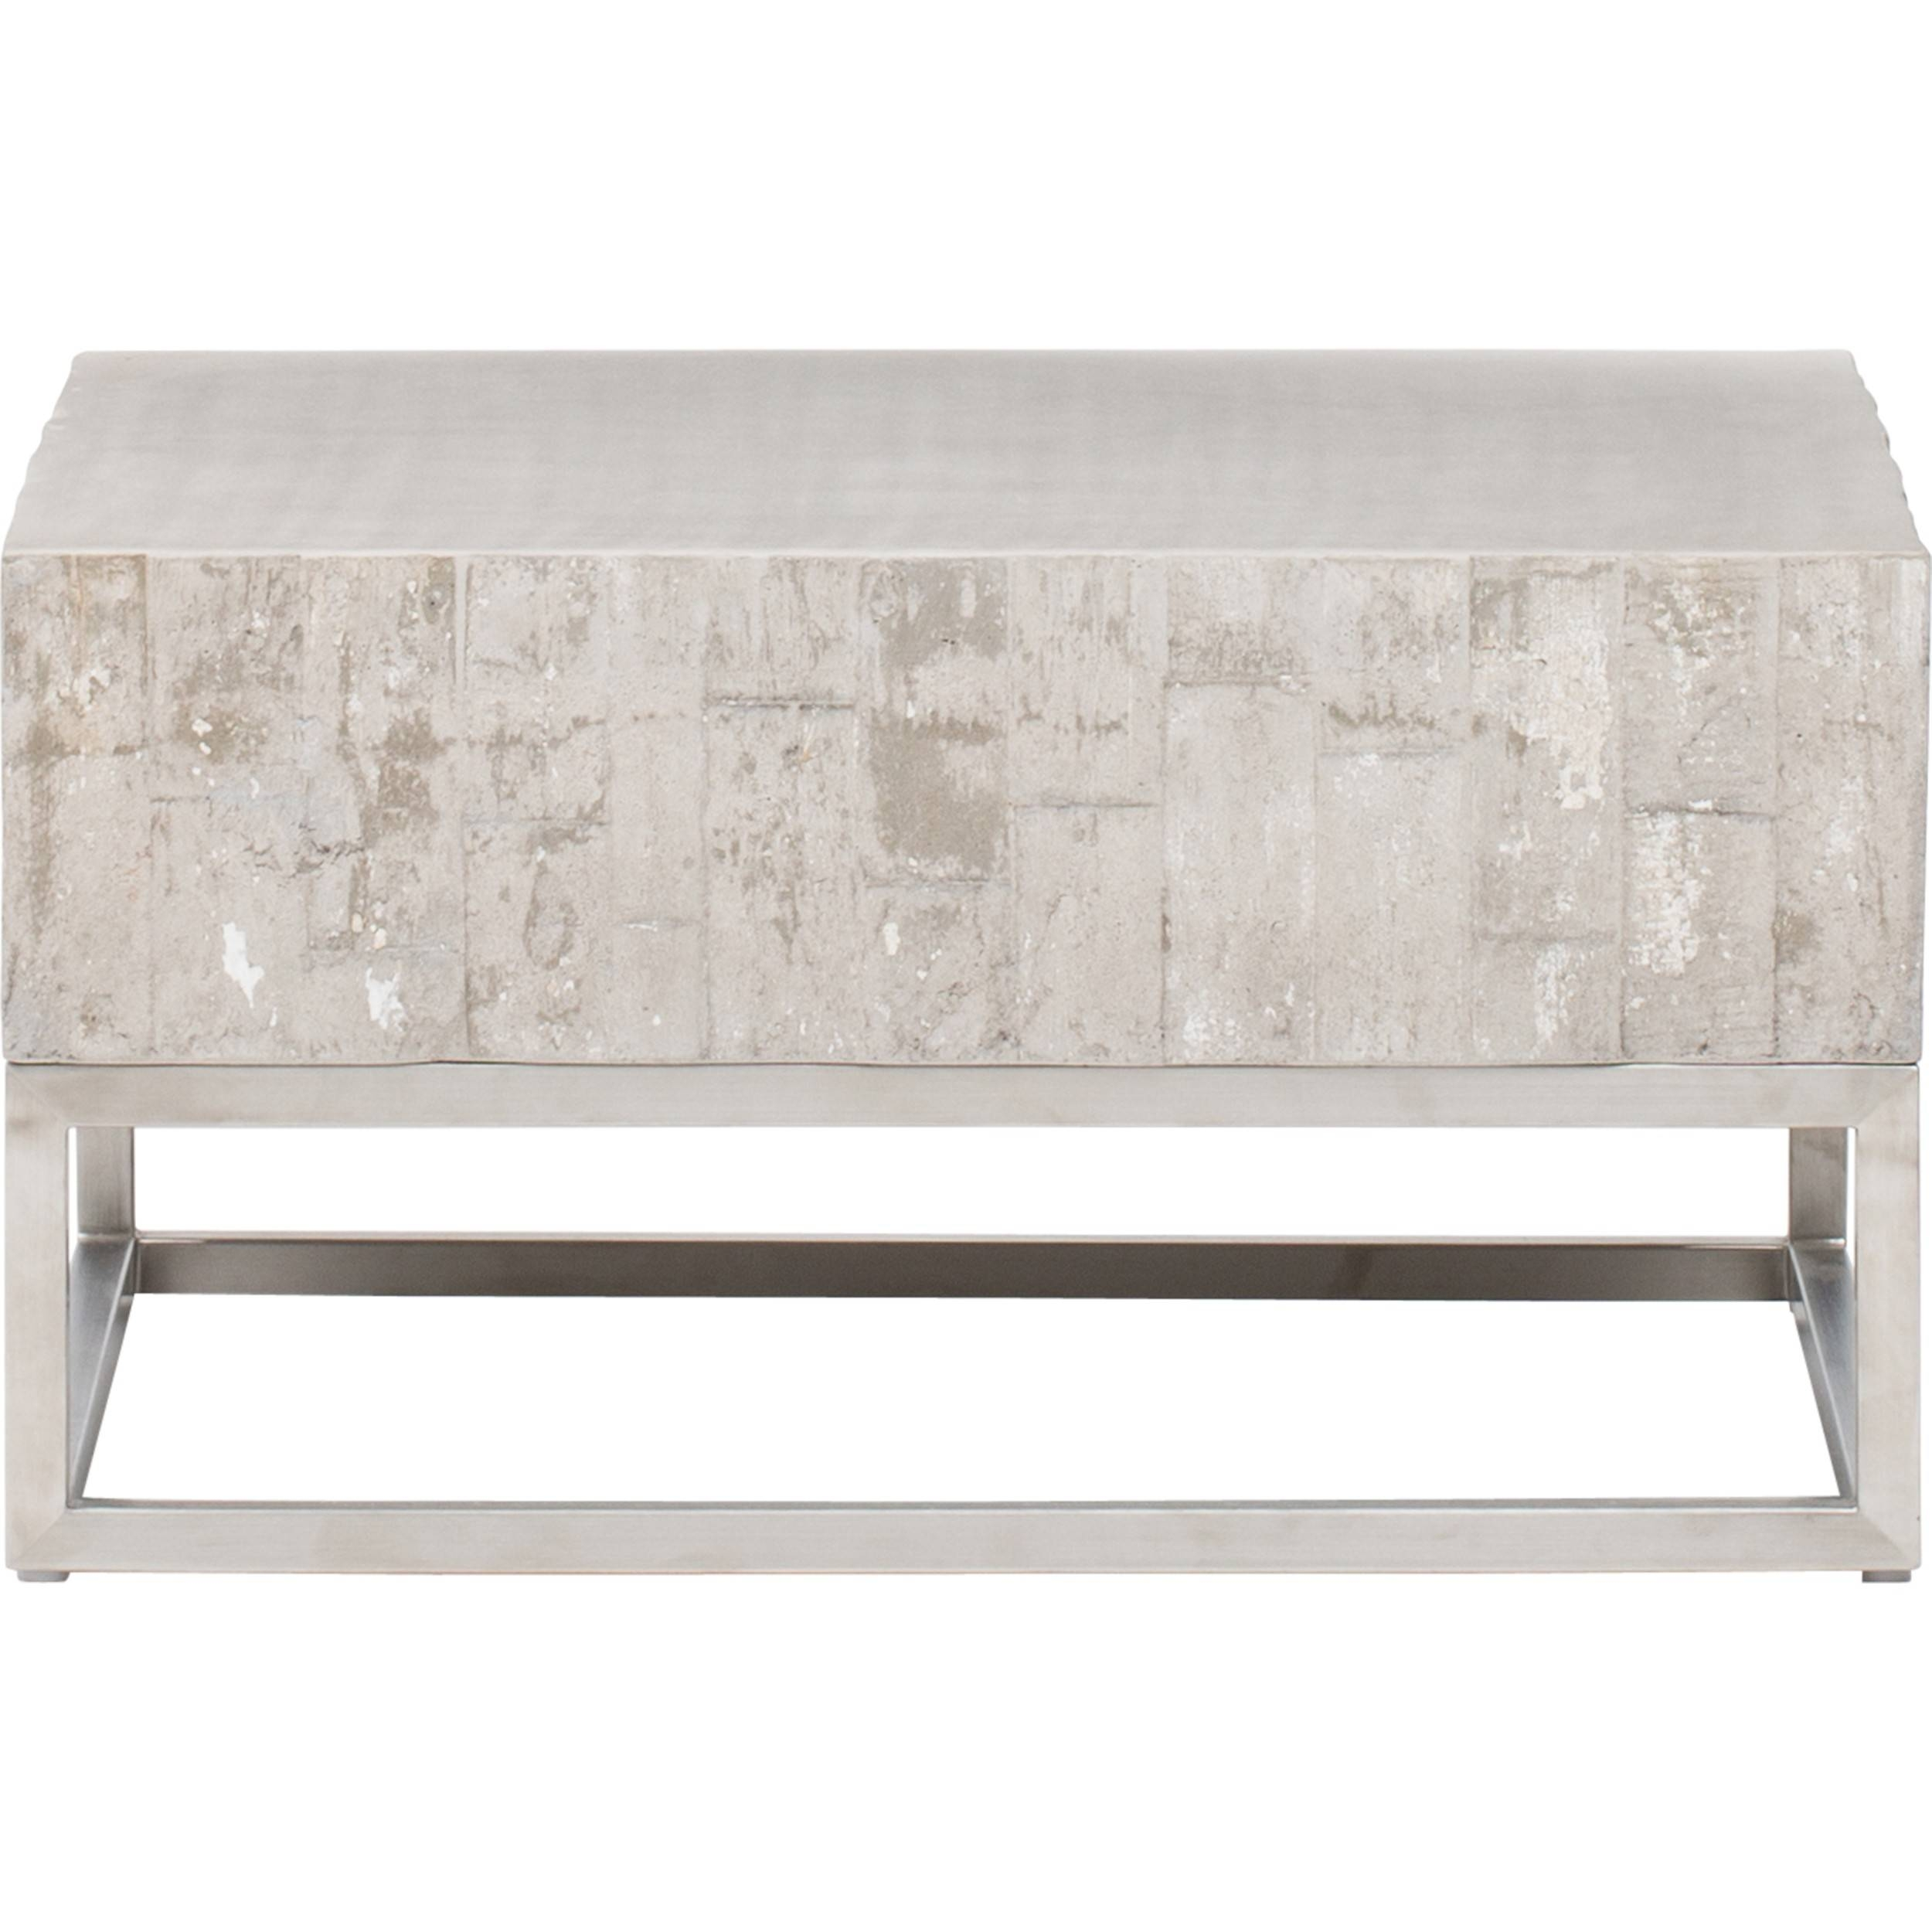 Best Chrome Coffee Tables - Concrete and chrome coffee table